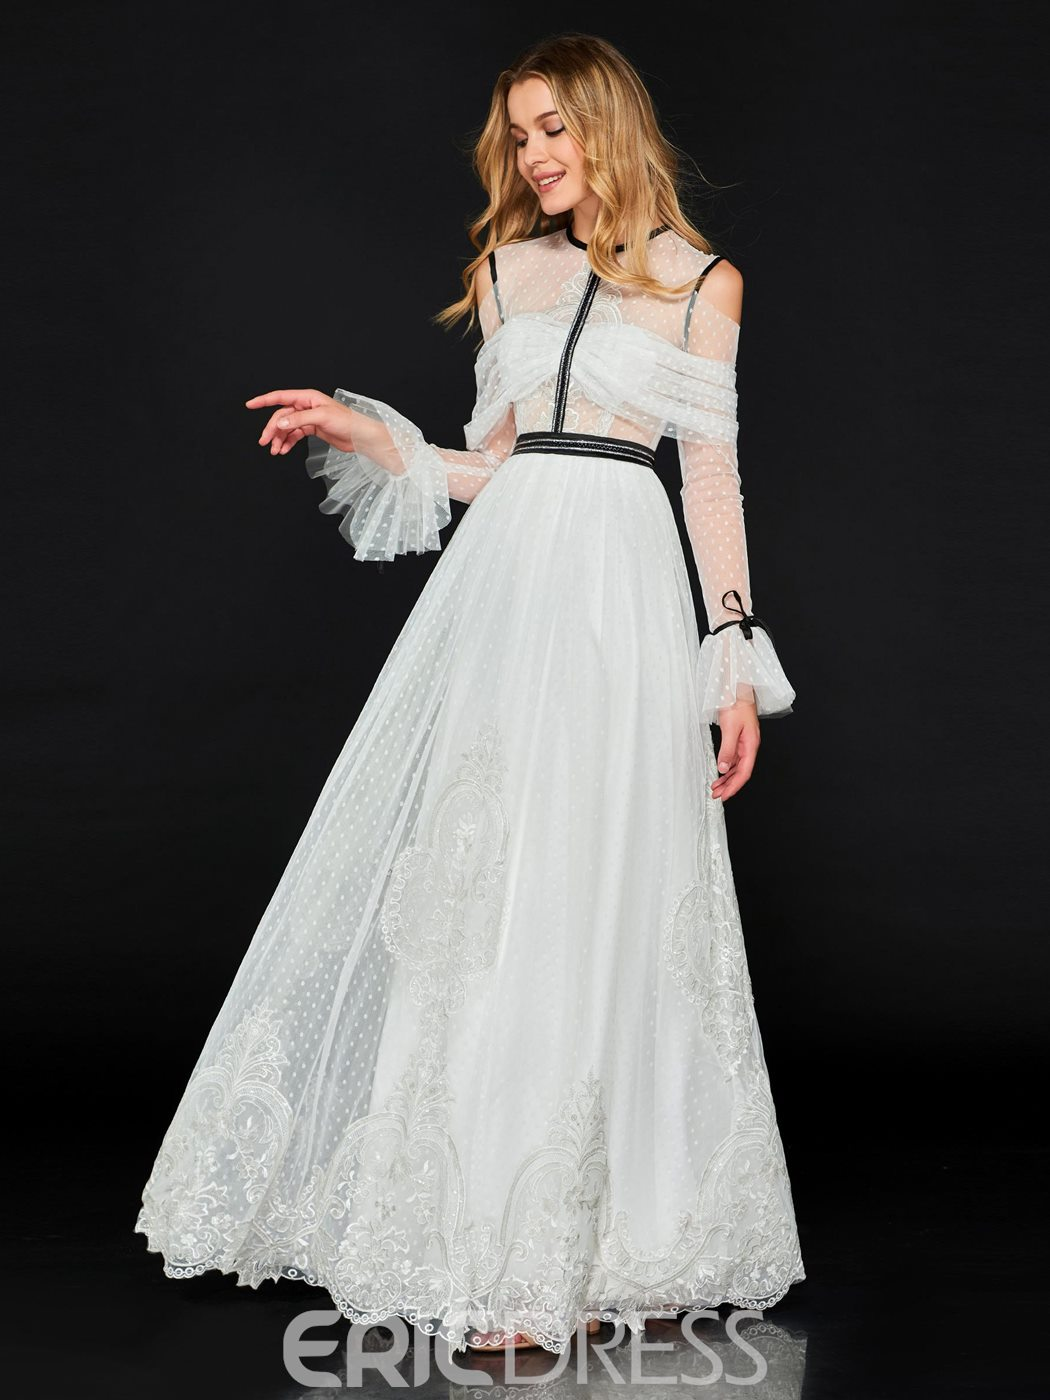 Ericdress A Line Long Sleeve Lace Prom Dress